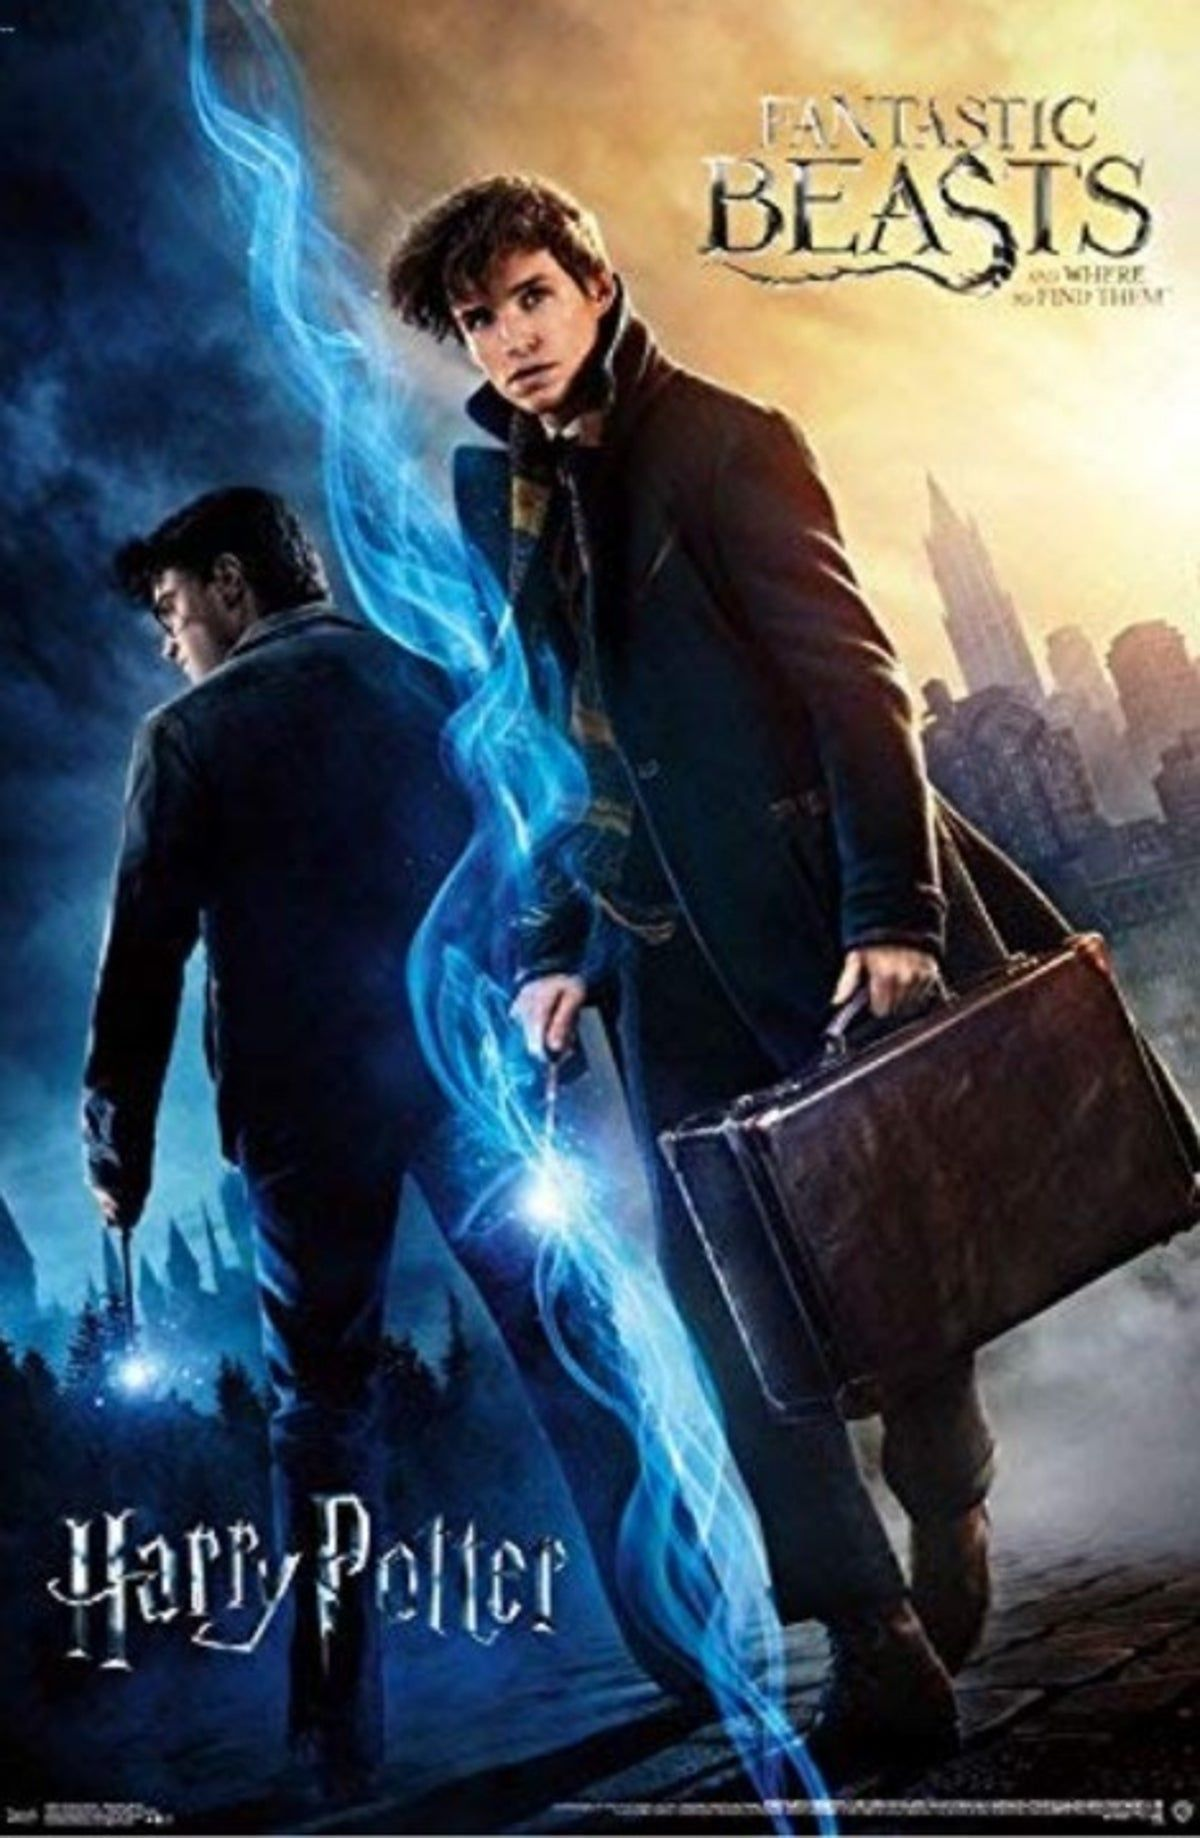 Fantastic Beasts Harry Potter Poster Harry Potter Movie Posters Harry Potter Poster Harry Potter Movies